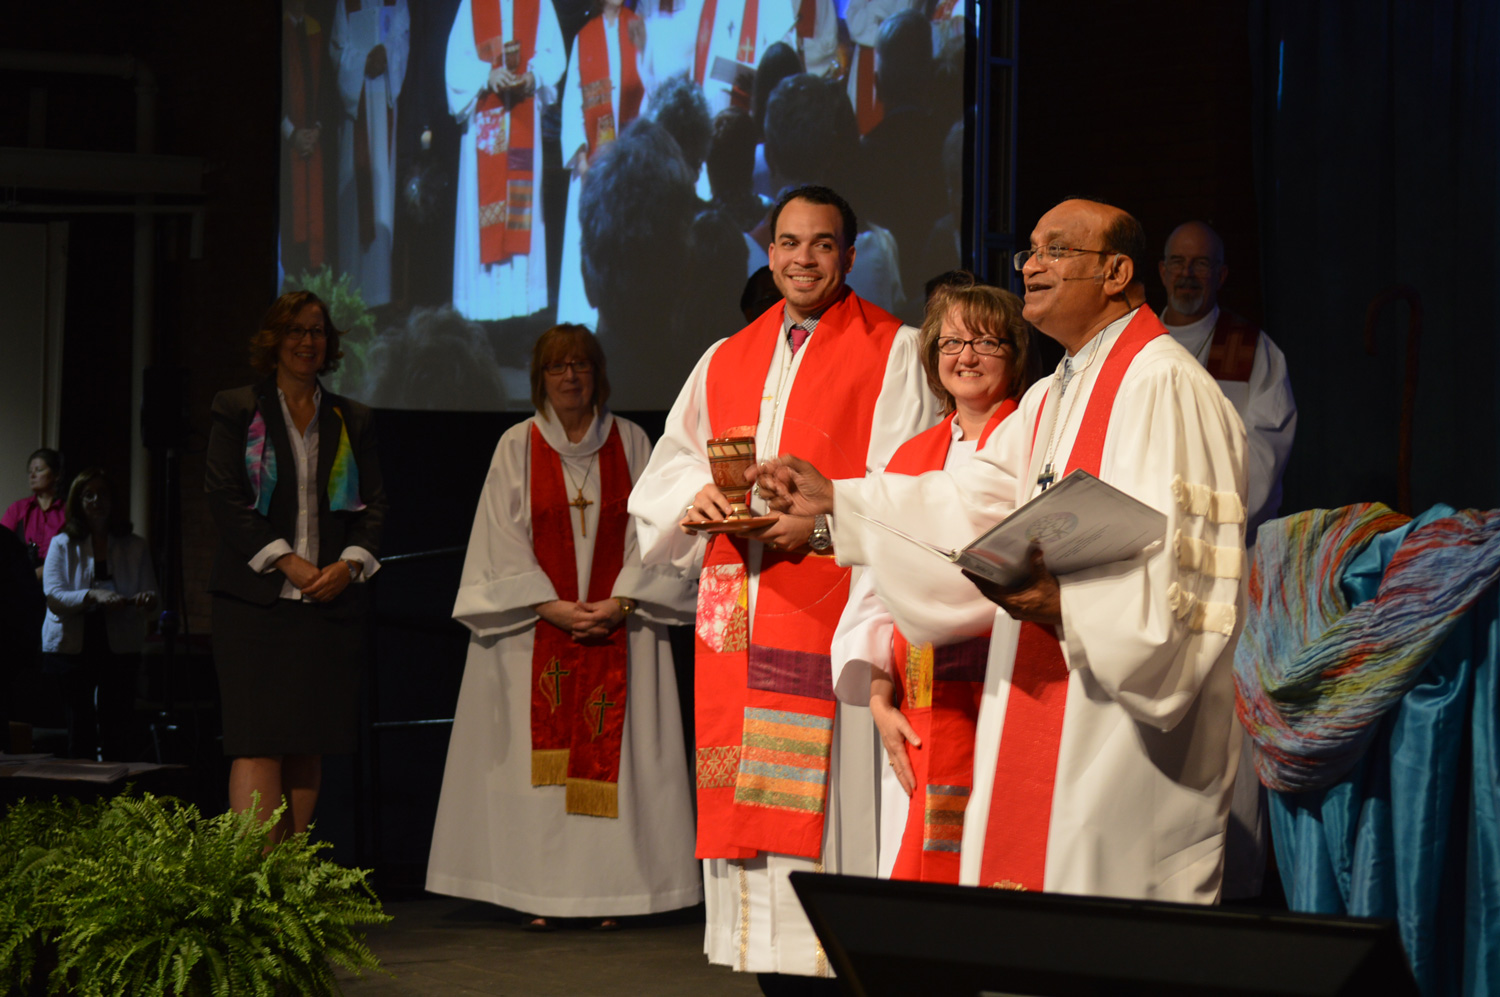 One of the first things many new clergy do after their ordination is help serve communion during the ordination worship service. Photo by Beth DiCocco, New England Conference.